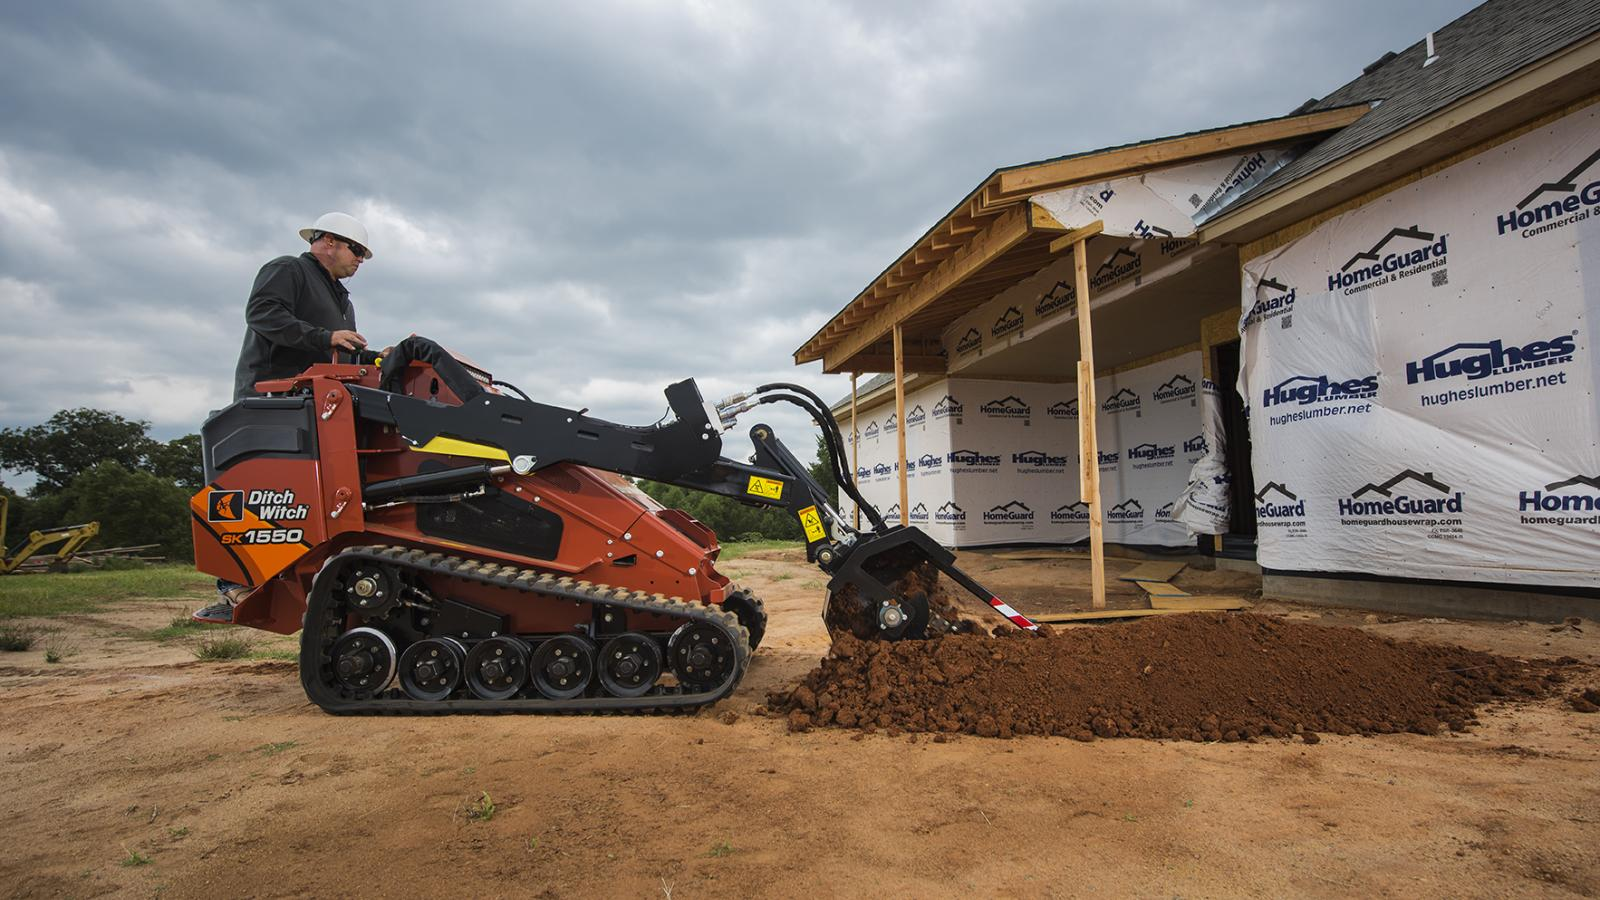 Ditch Witch SK1550 Mini Skid Steer